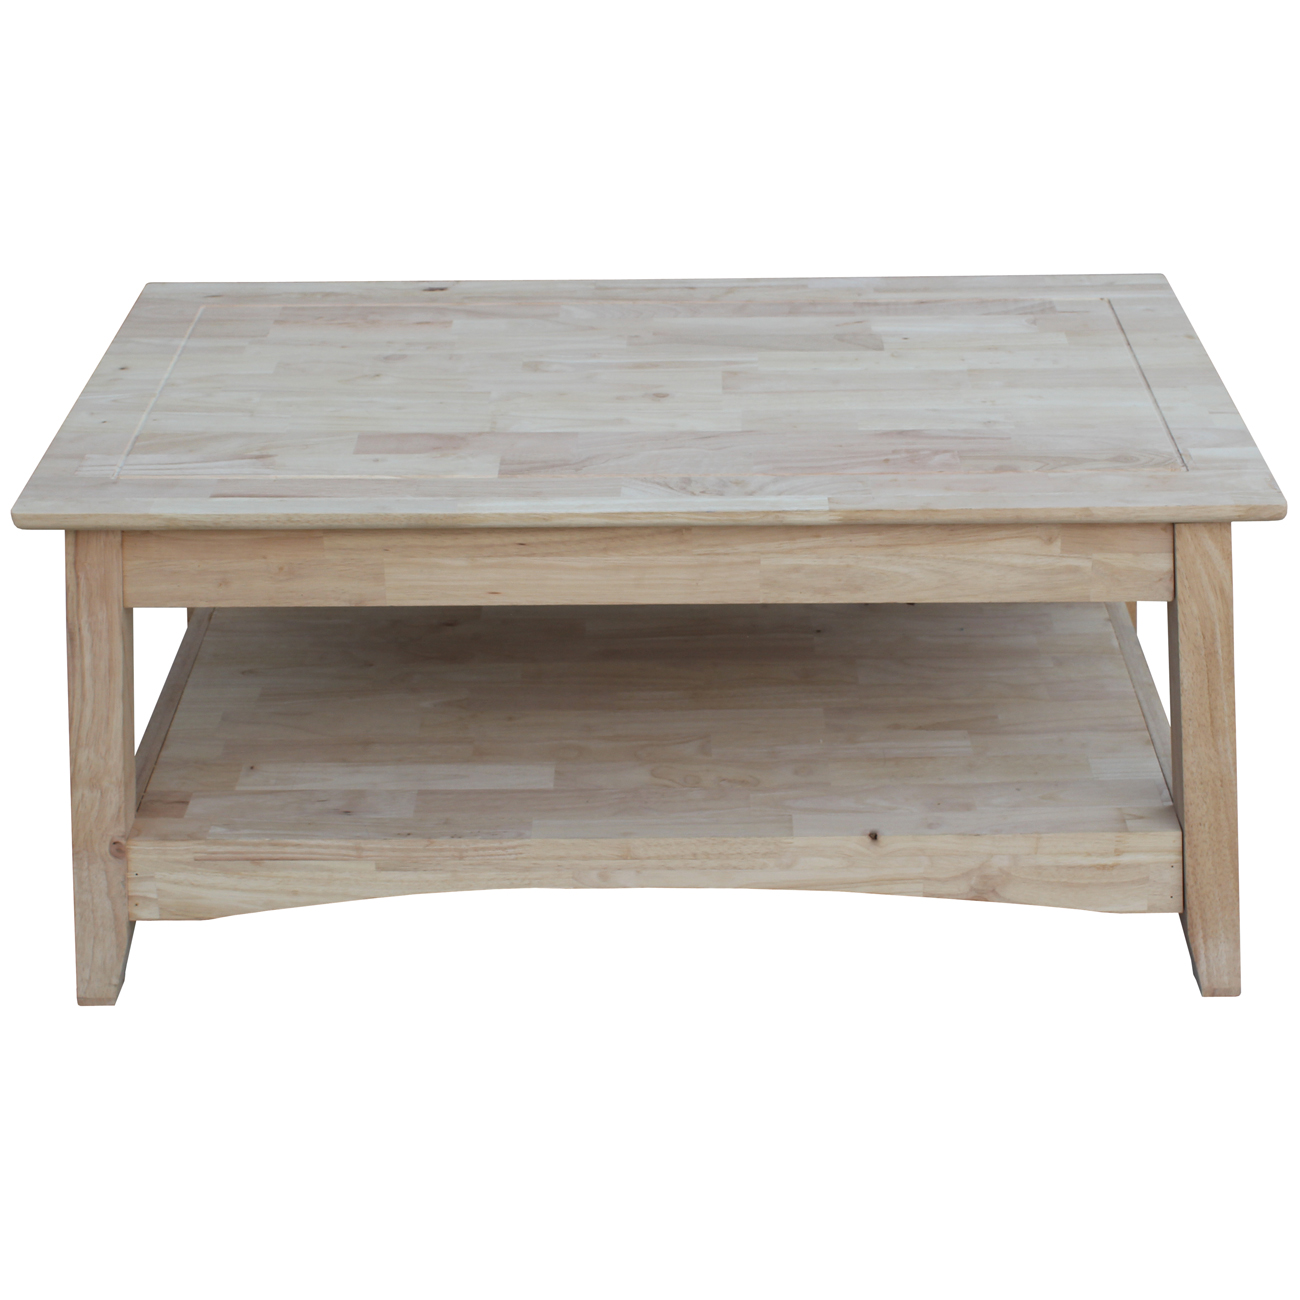 International Concepts Ot-4Tcl Bombay Tall Coffee Table with Lift Top, Ready To Finish